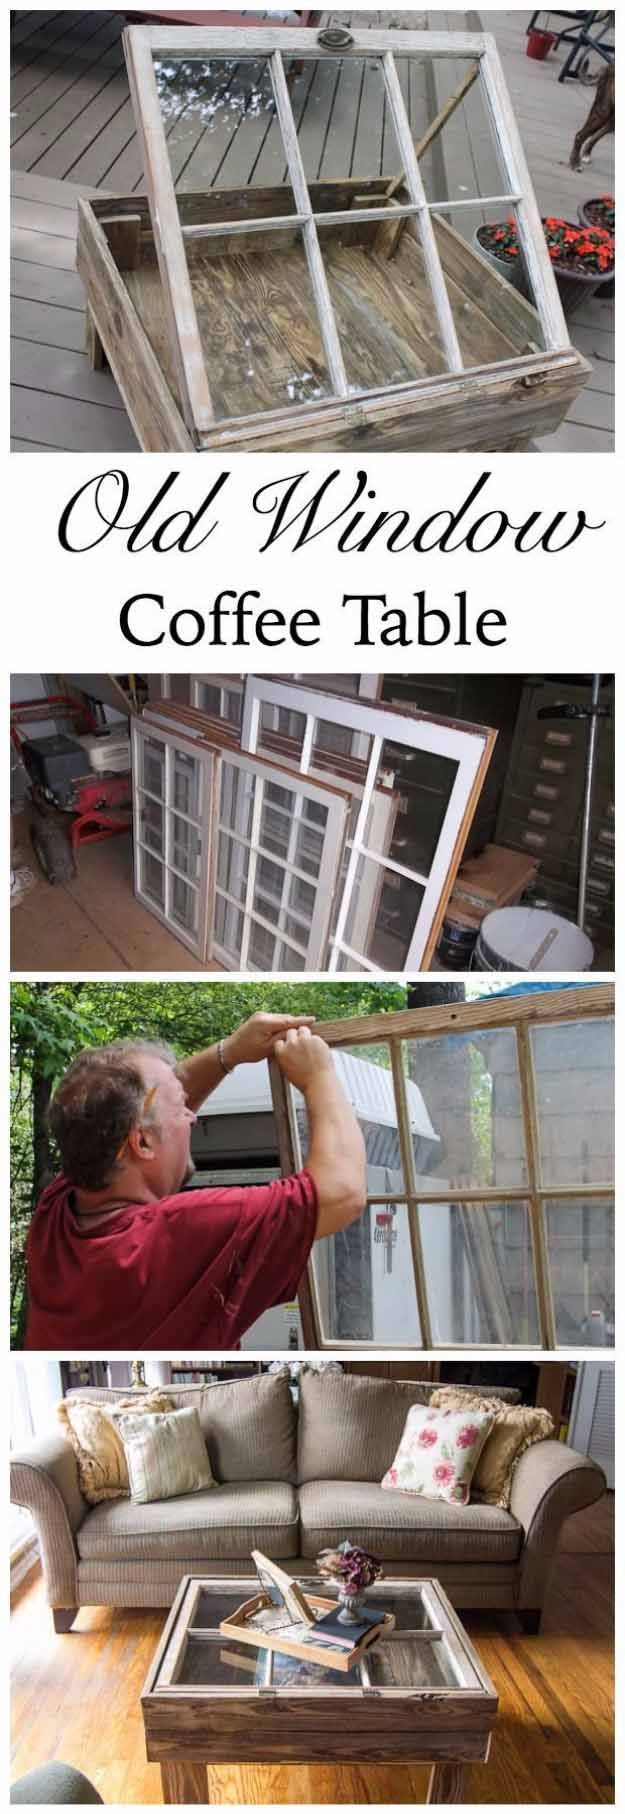 Easy DIY Furniture Ideas   Upcycling Projects with Old Windows   DIY Rustic Coffee Table Ideas   DIY Projects and Crafts by DIY JOY  at http://diyjoy.com/diy-home-decor-coffee-table-ideas